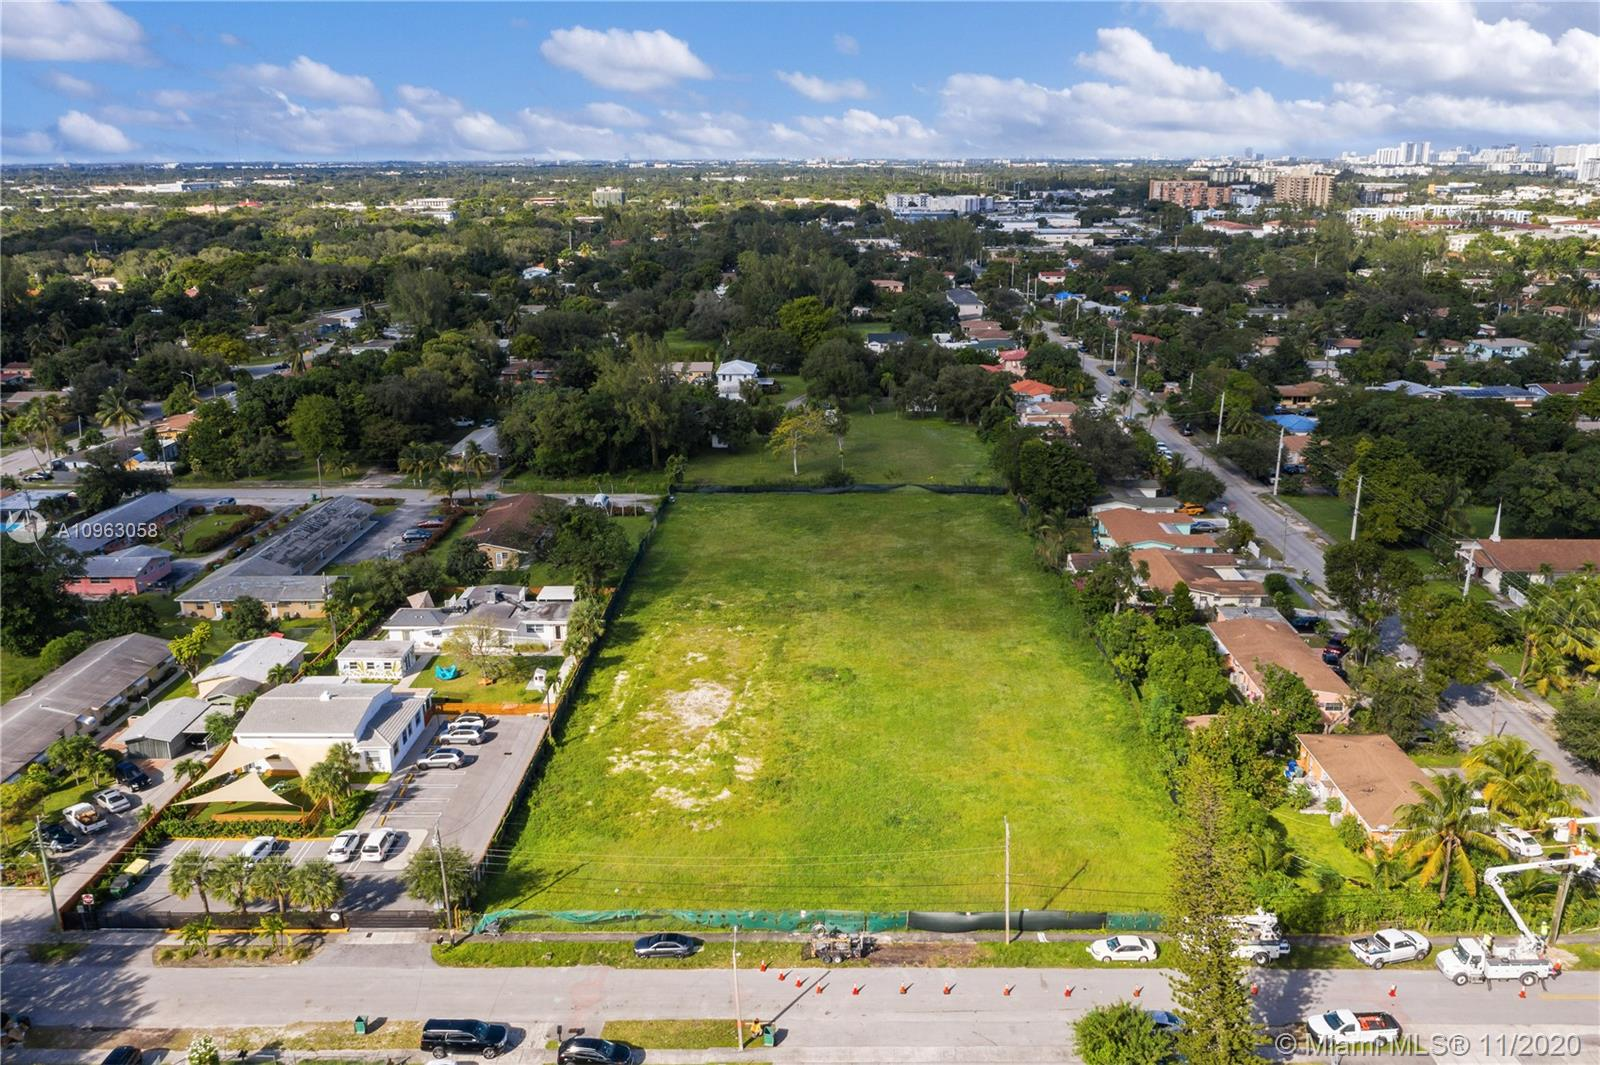 NE 112 ST, Unincorporated Dade County, Florida 33161, ,Commercial Land,For Sale,NE 112 ST,A10963058